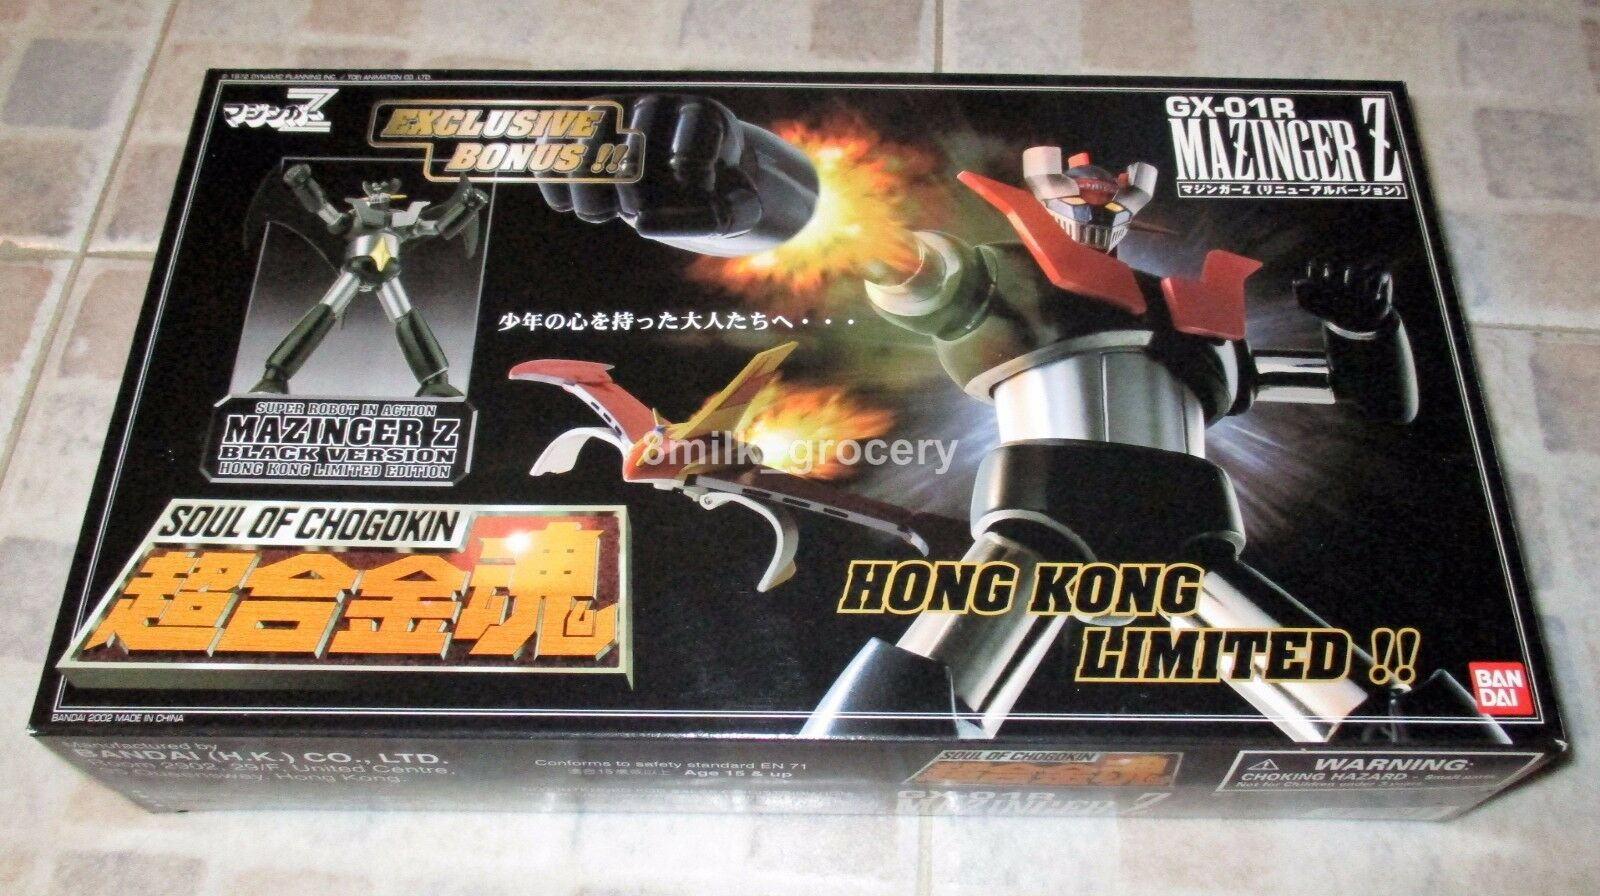 Bandai 2002 Mazinger Z GX-01R Soul of Chogokin Hong Kong Limited Version w Bonus